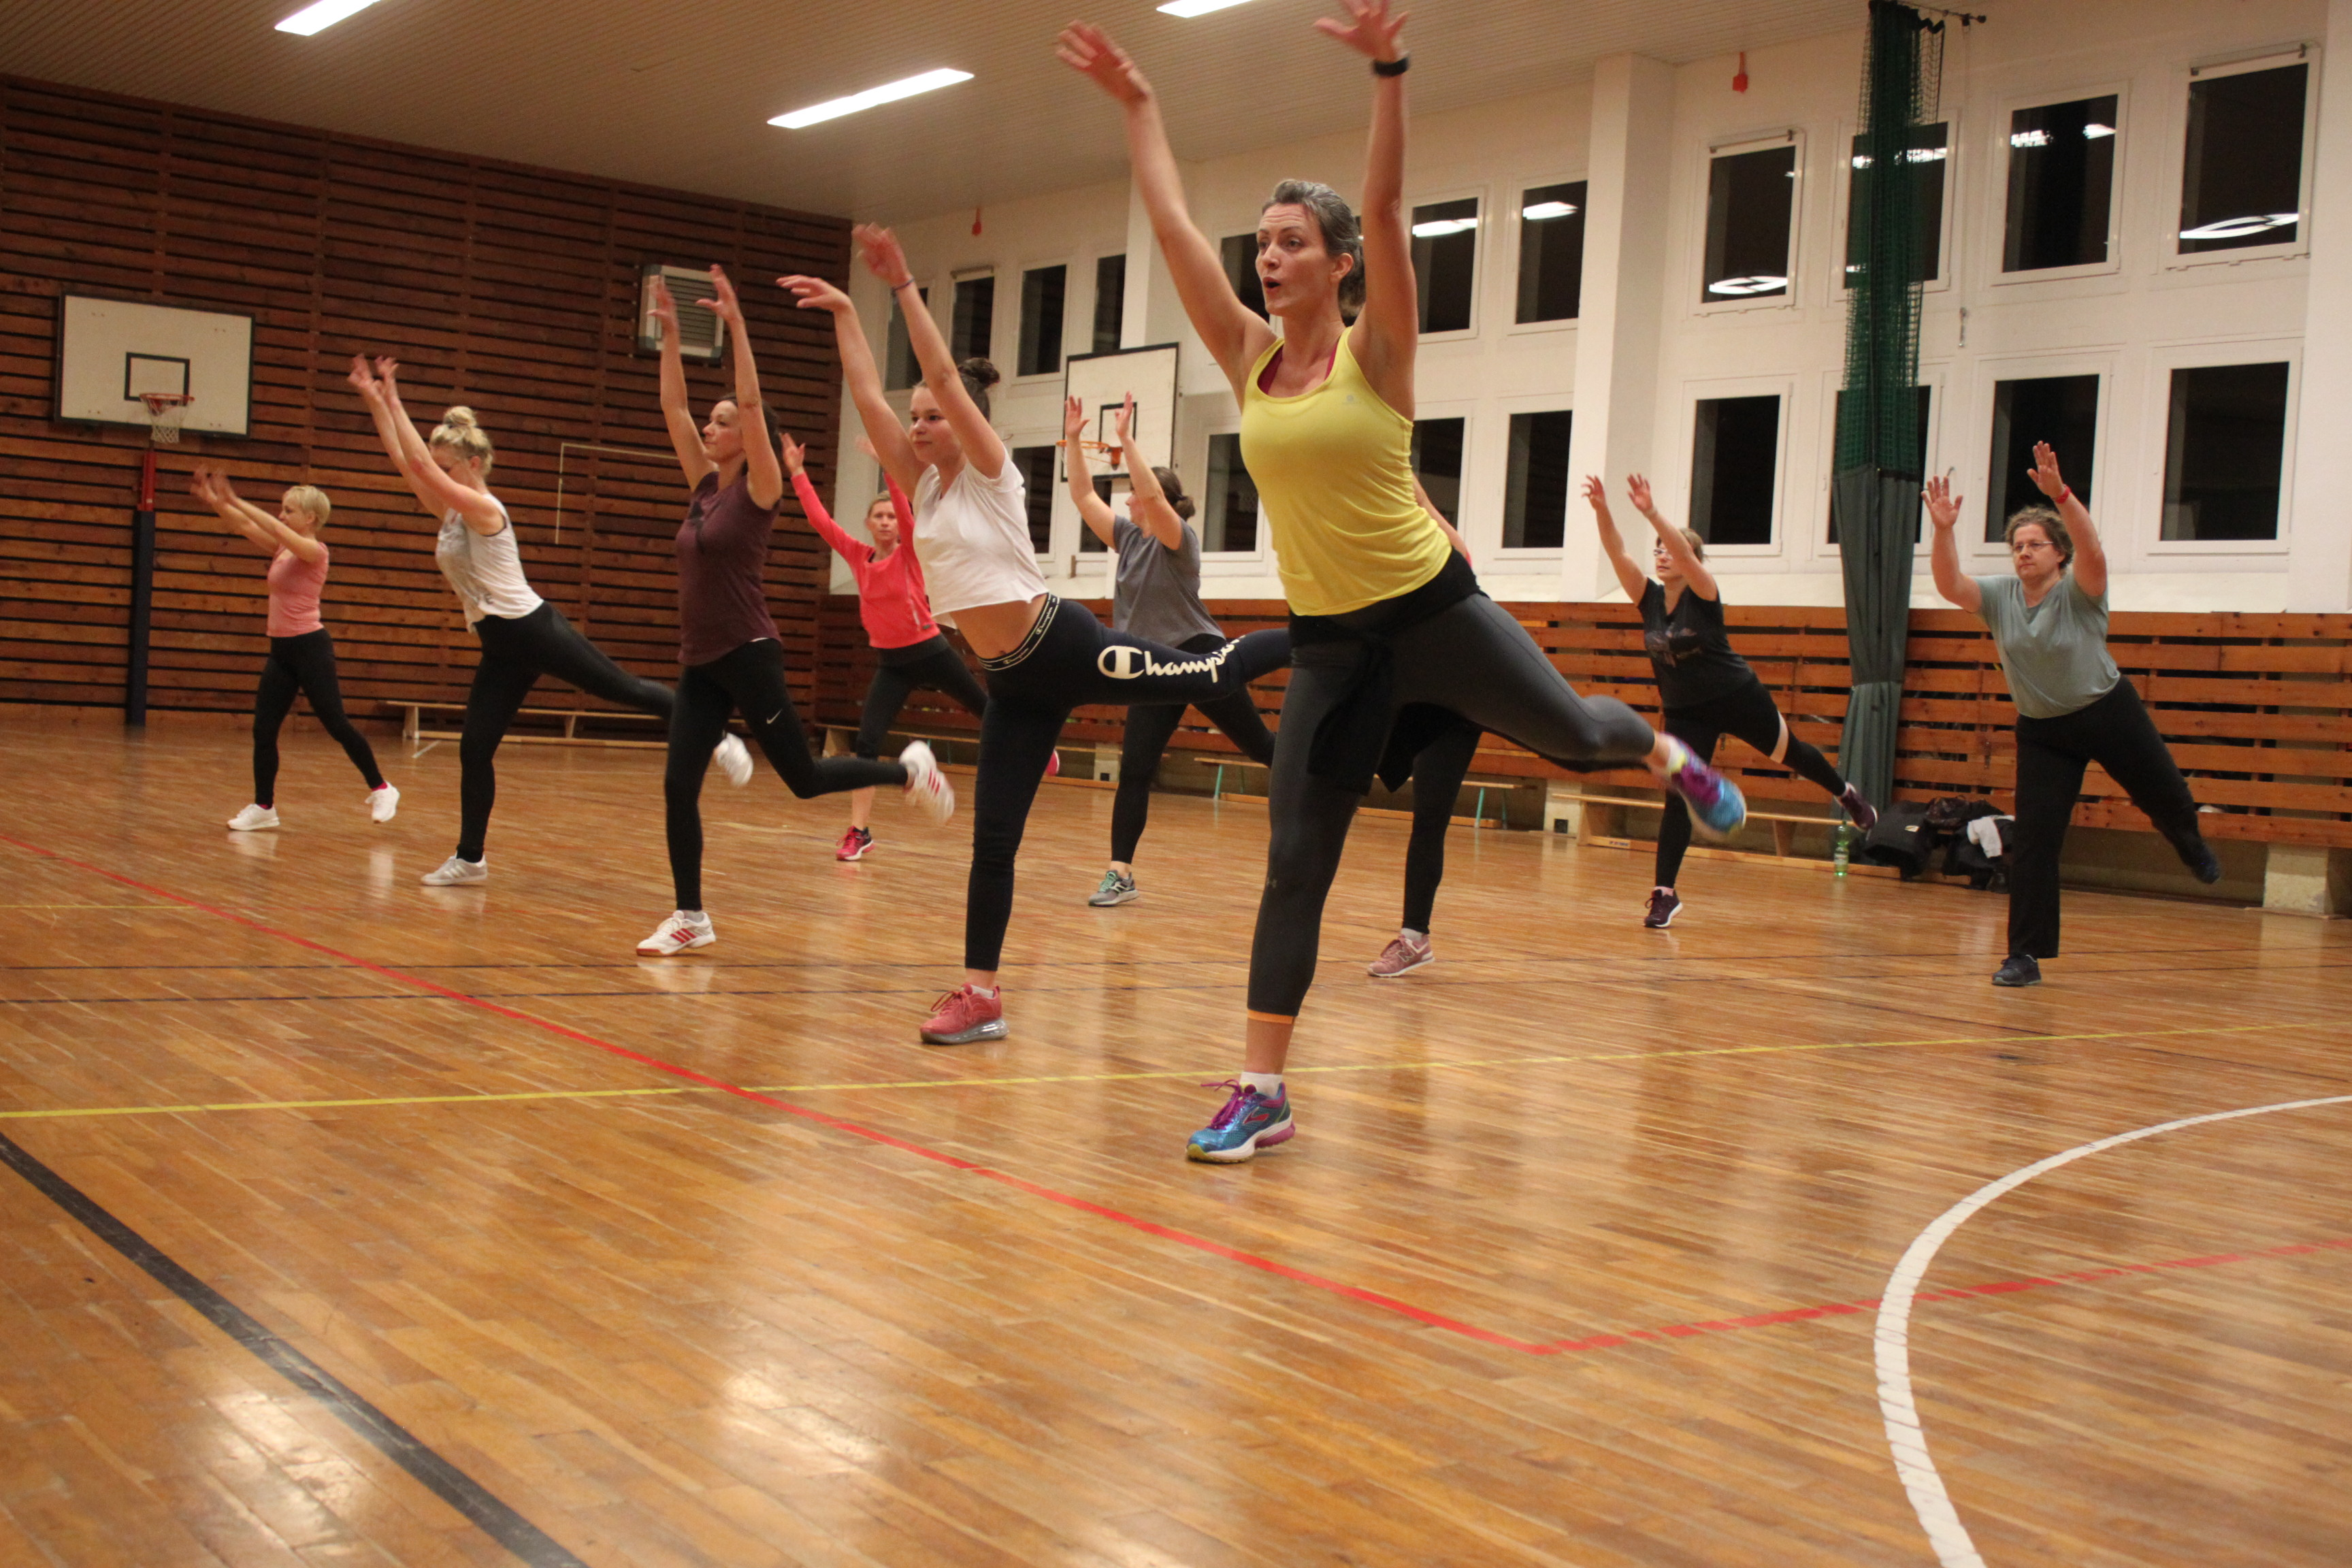 Neuer Aerobic-Kurs mit Susi Lother ab 2. September